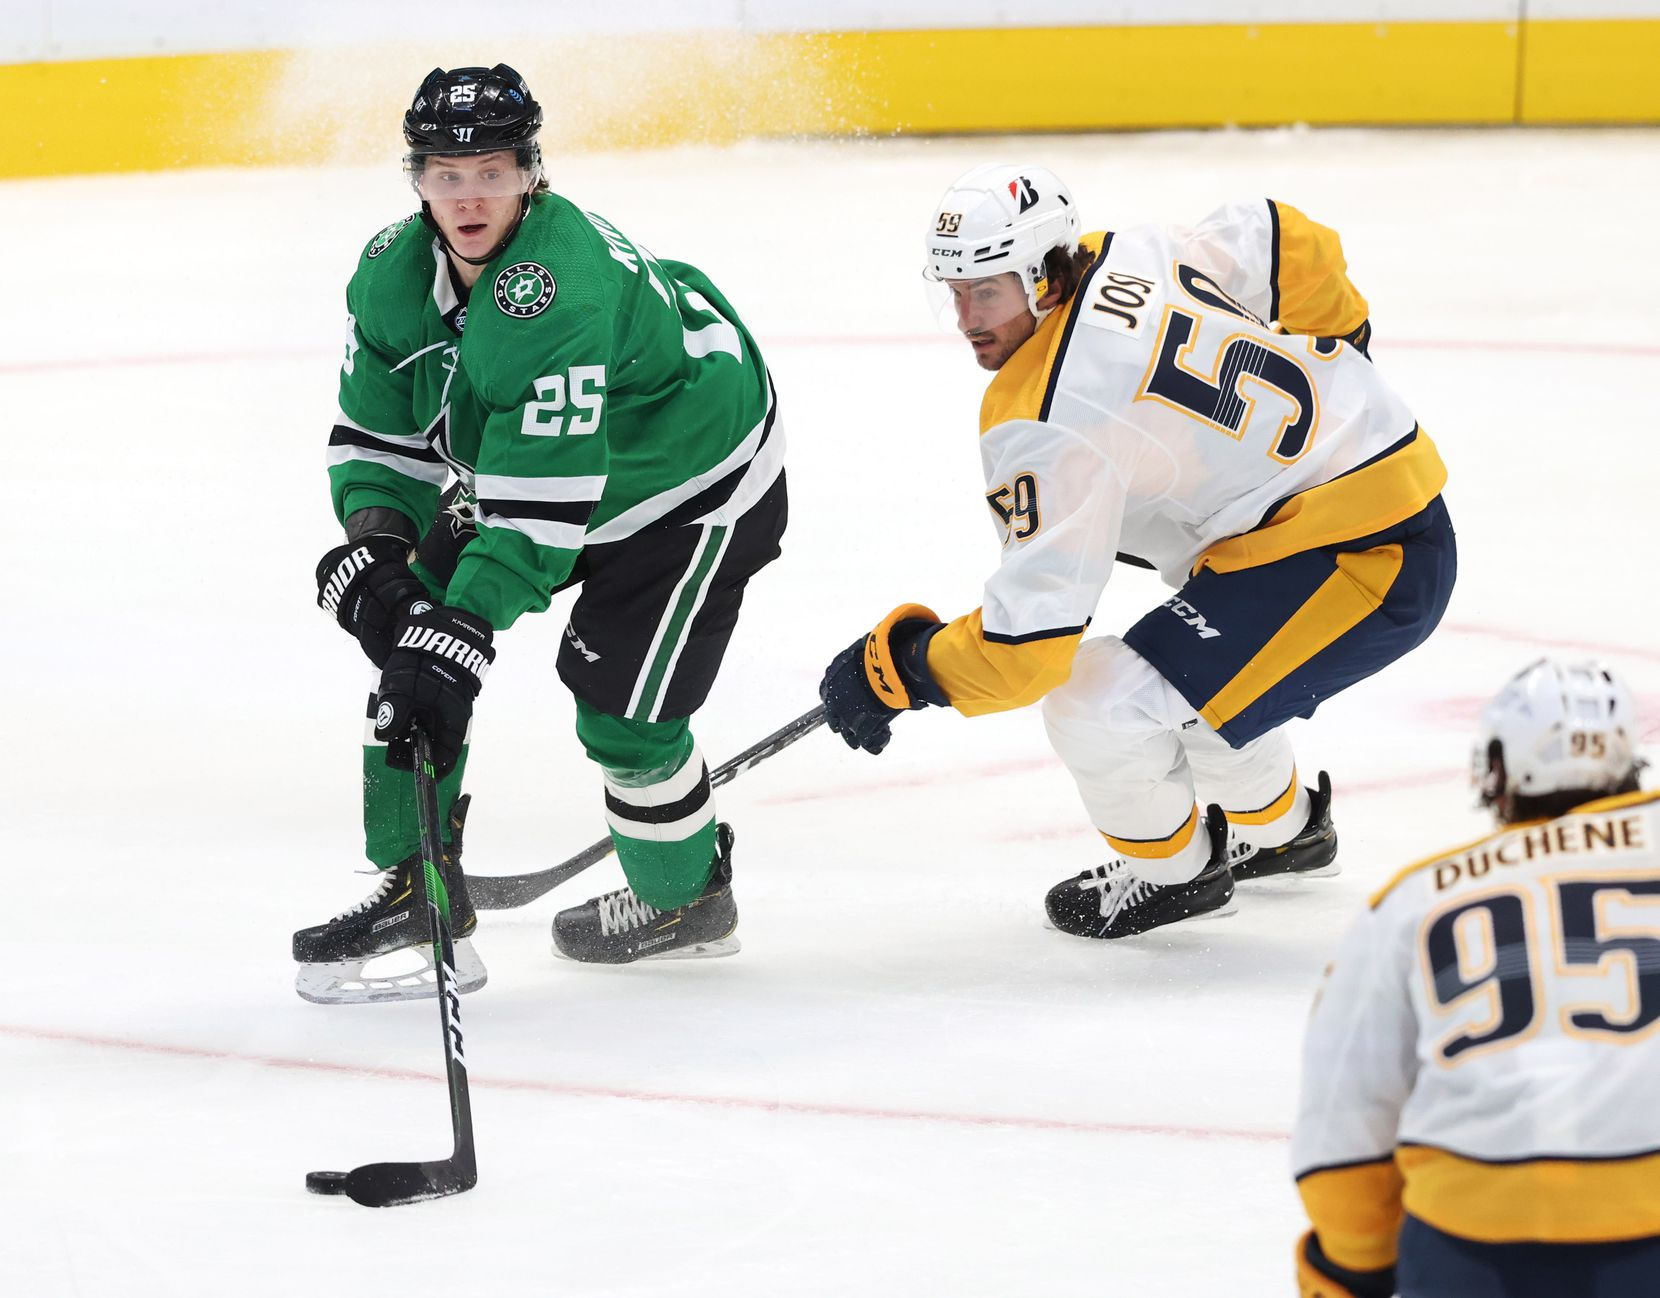 Dallas Stars left wing Joel Kiviranta (25) looks to pass as Nashville Predators defenseman Roman Josi (59) closes in on him during the first period of play in the Stars home opener at American Airlines Center on Friday, January 22, 2021in Dallas. (Vernon Bryant/The Dallas Morning News)